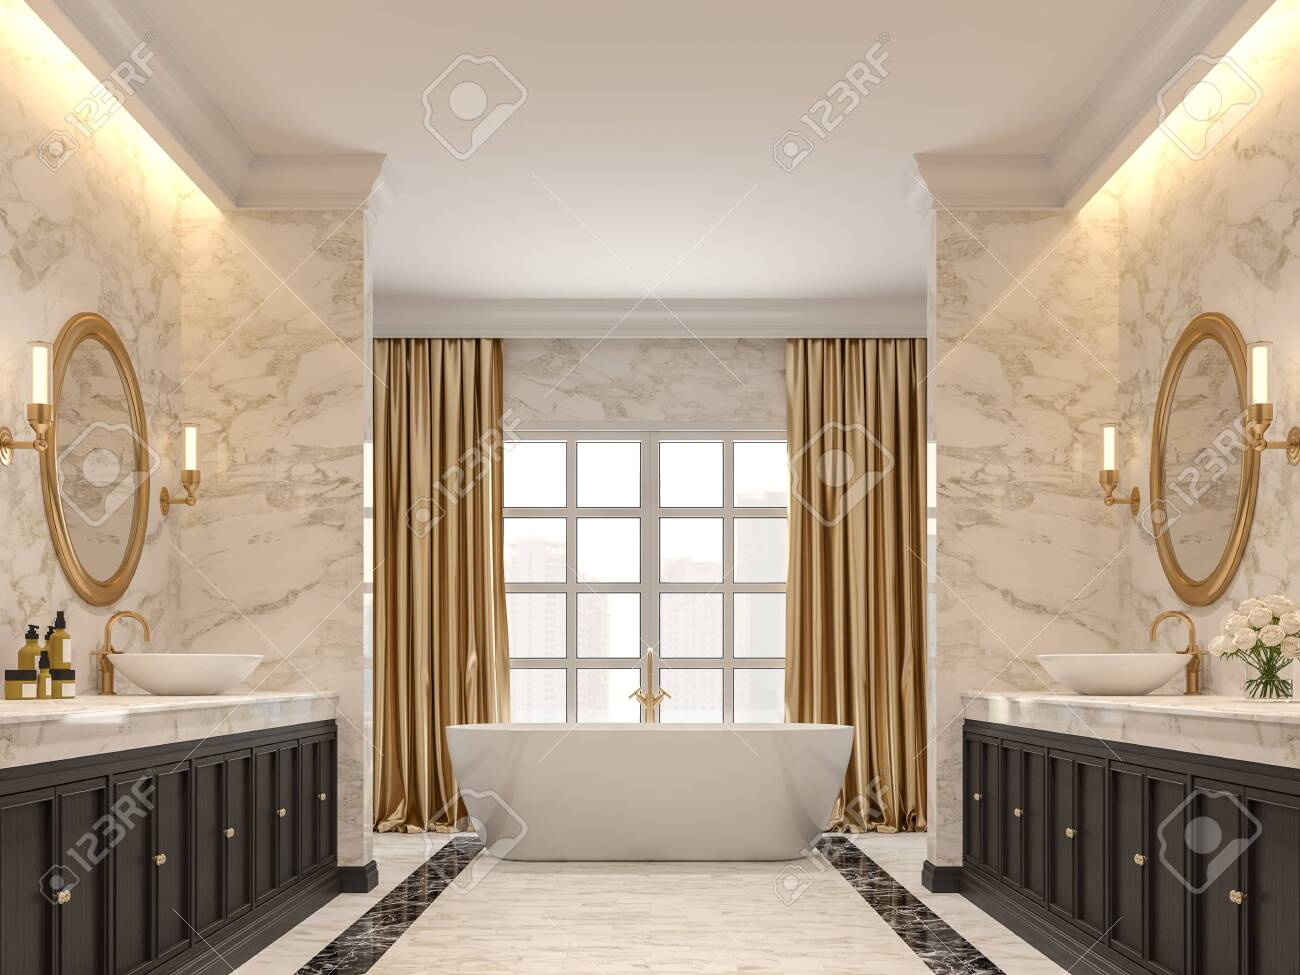 Luxurious Bathroom With White Marble Walls And Floors Black Stock Photo Picture And Royalty Free Image Image 126735130